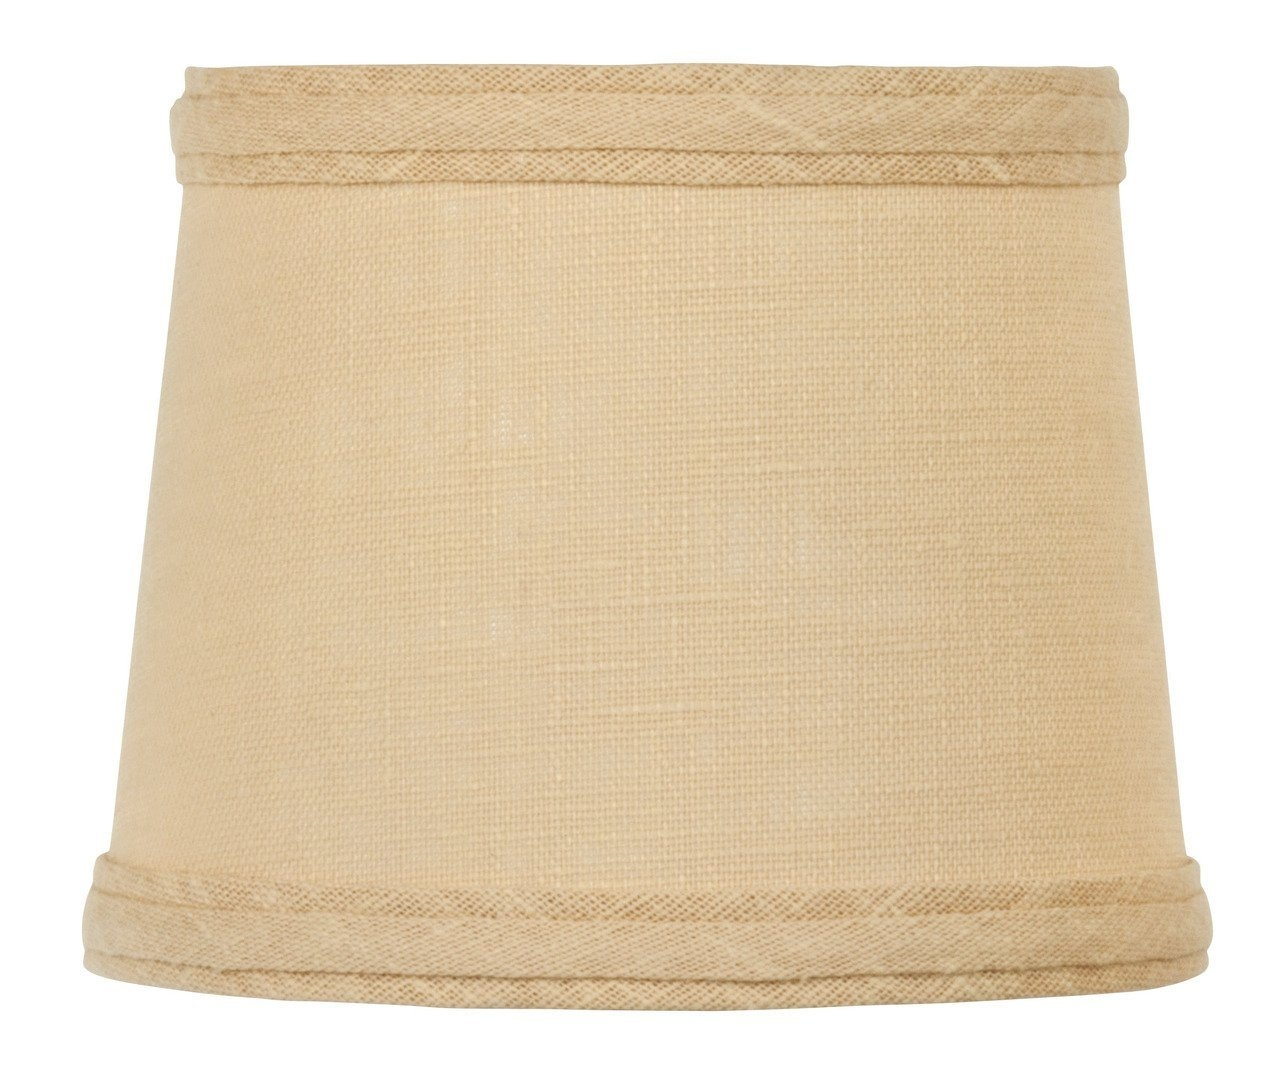 Upgradelights Sand Linen 6 Inch Drum Style Clip On Chandelier Mini Inside Clip On Drum Chandelier Shades (Image 25 of 25)